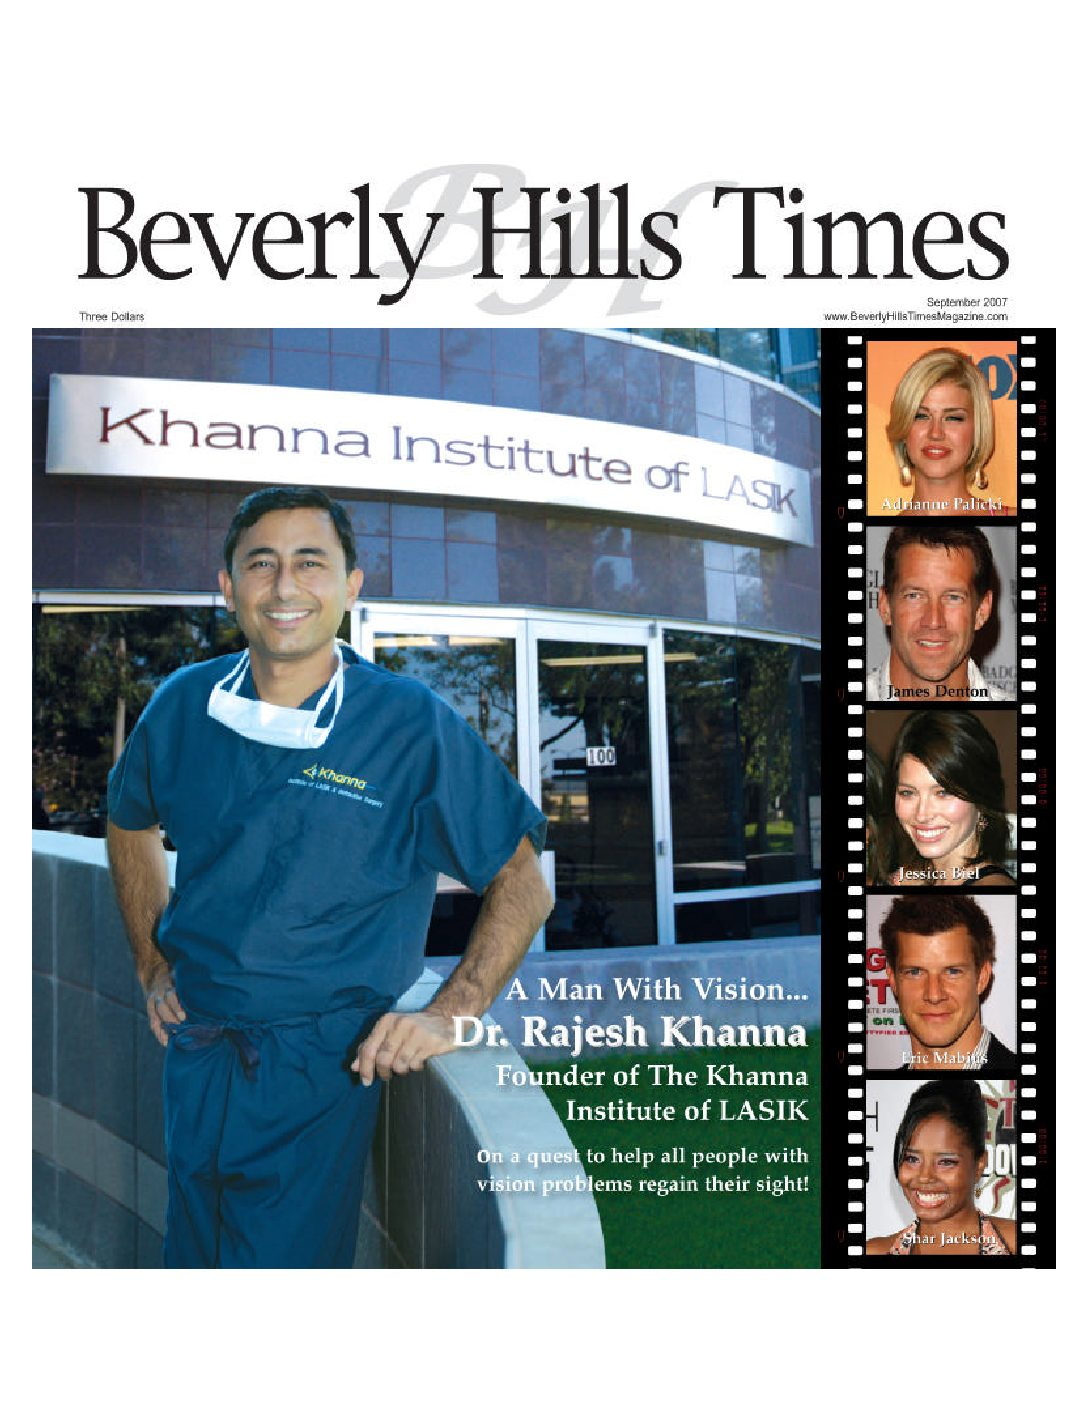 BHTimesArticleSep07 3pages pdf